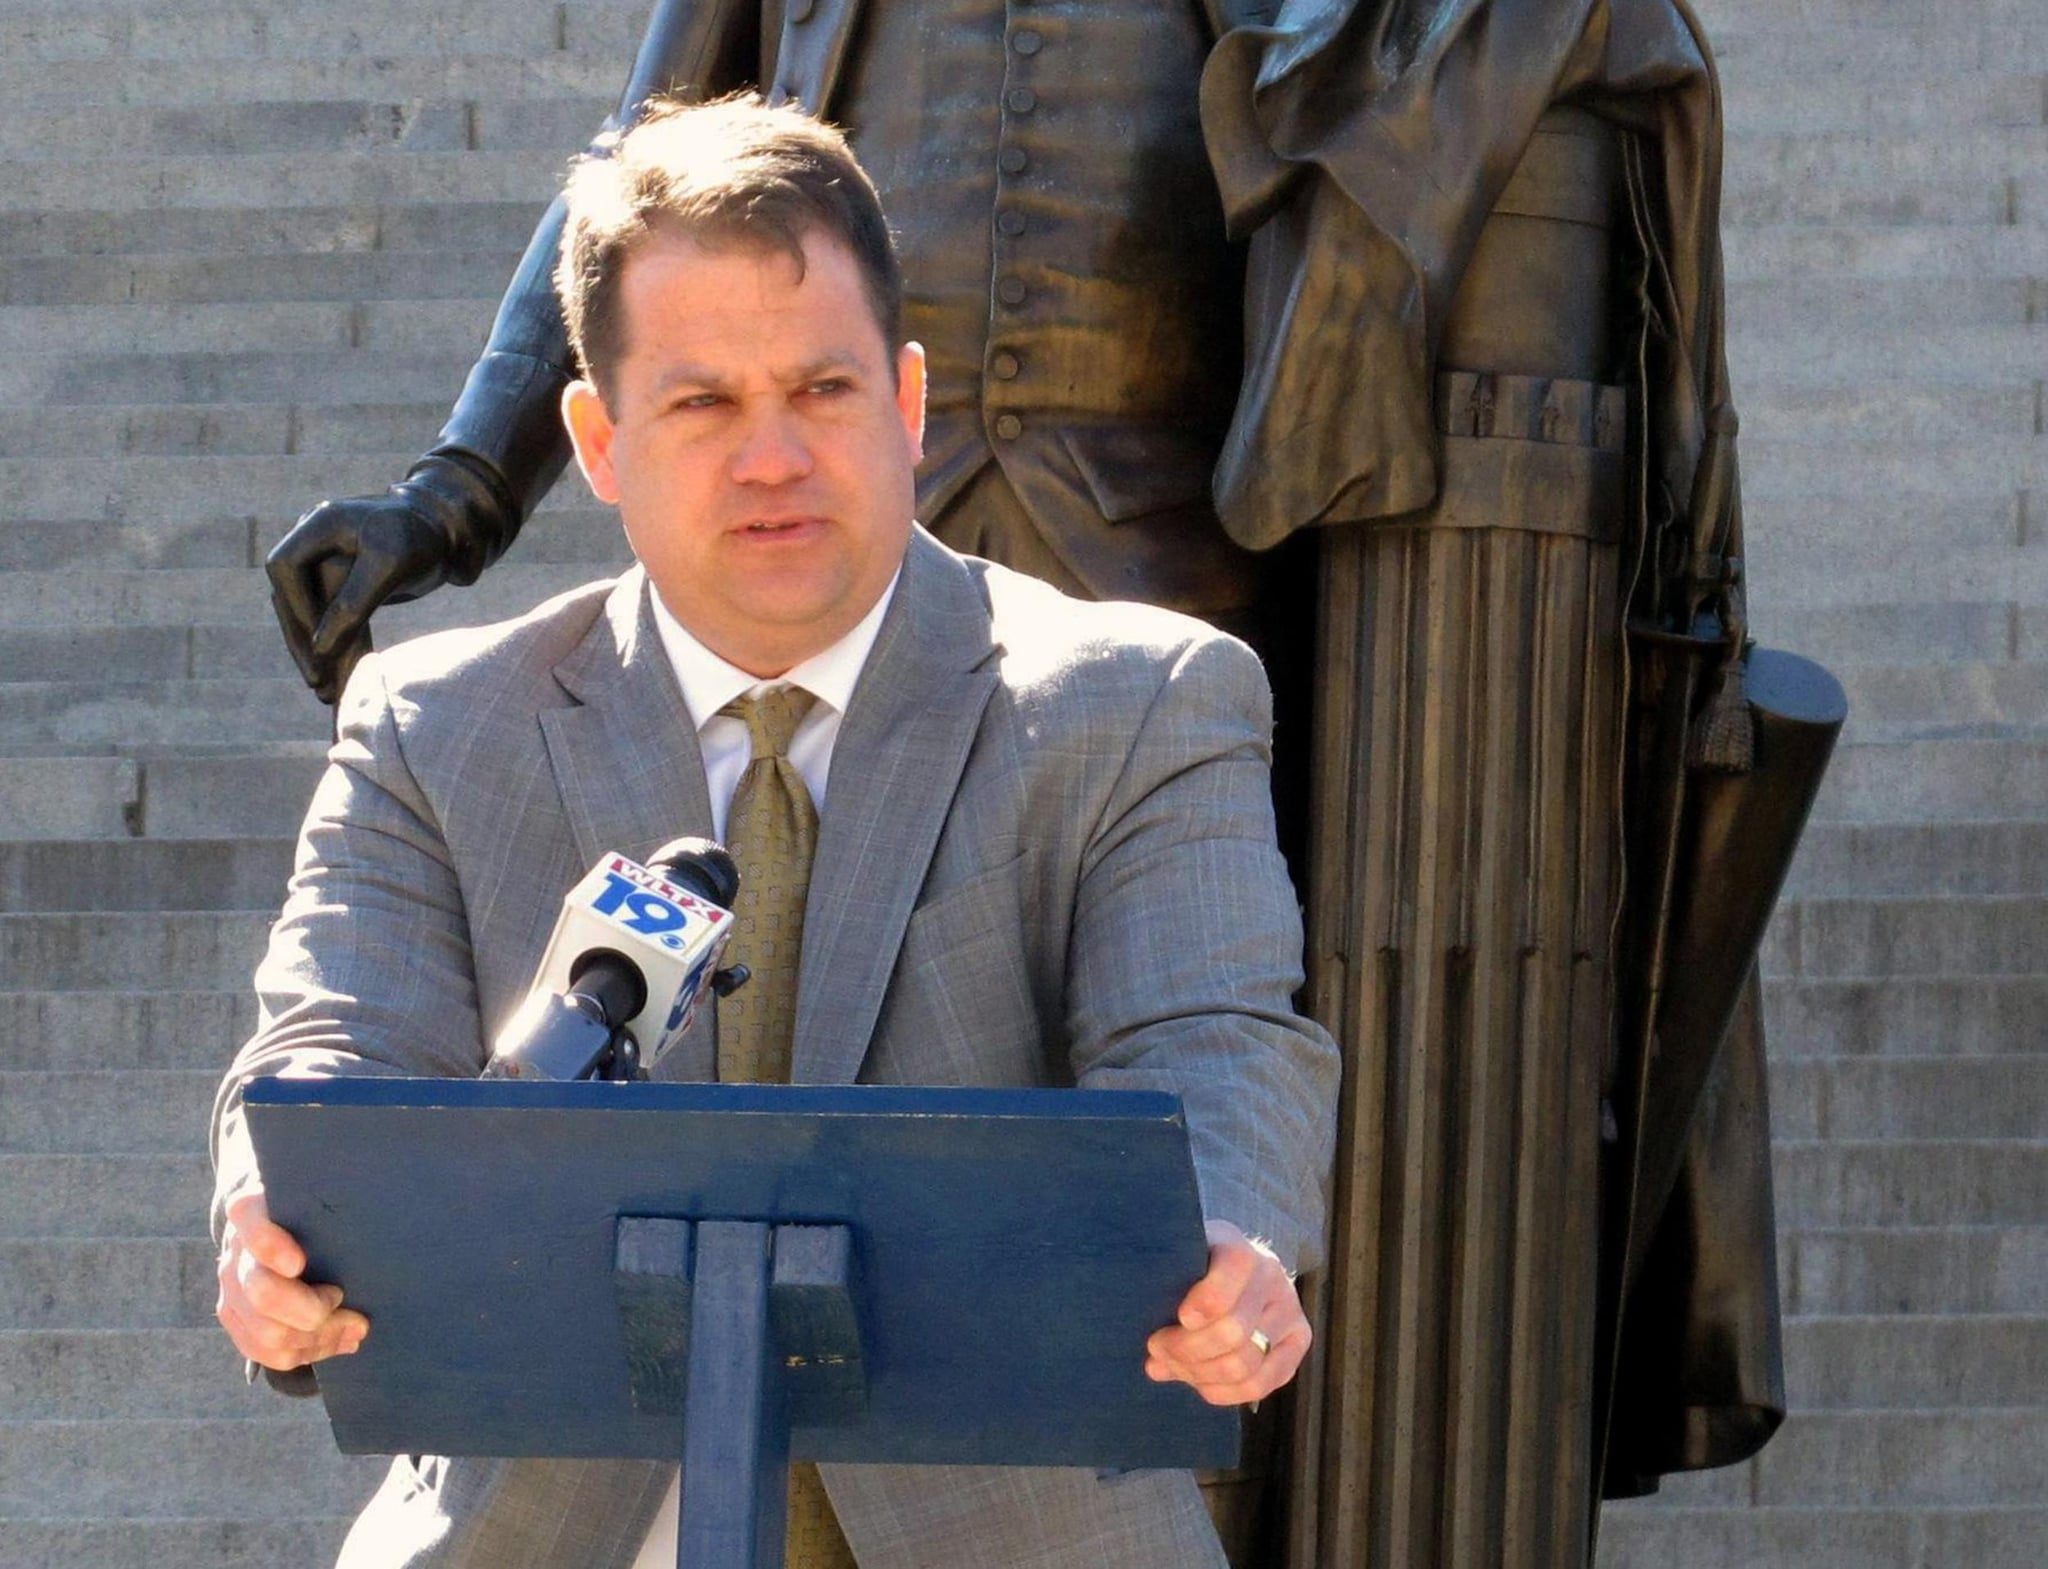 South Carolina Senate Sen. Lee Bright (R) is reintroducing legislation to block the federal government from enforcing gun bans and regulations in the state. (Photo: NBC)